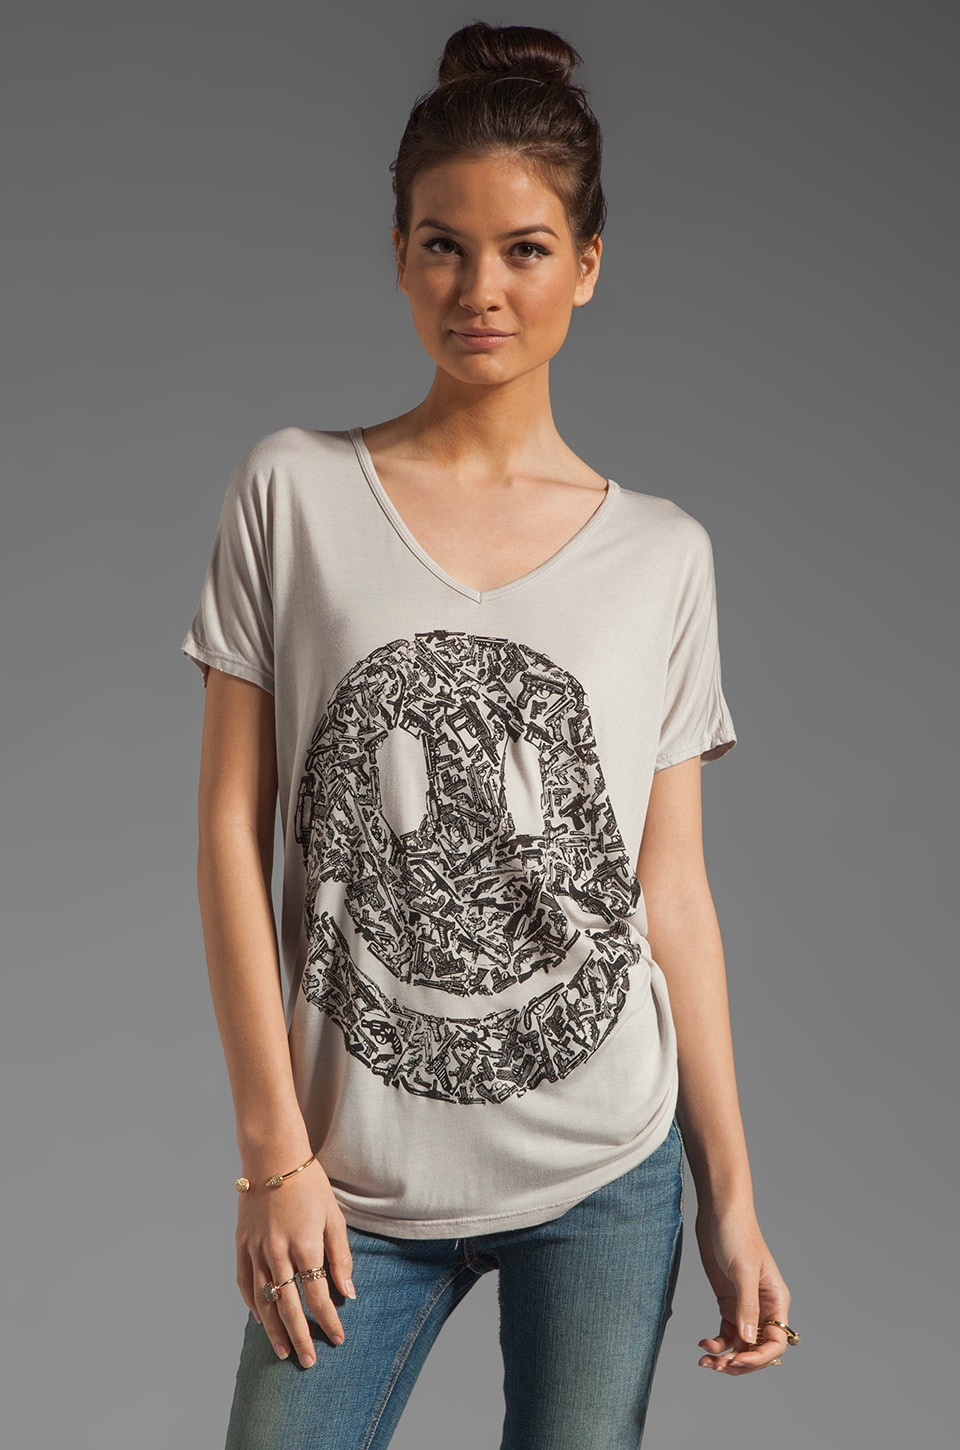 Lauren Moshi April Gun Happy Face Oversized Tee in Cloud